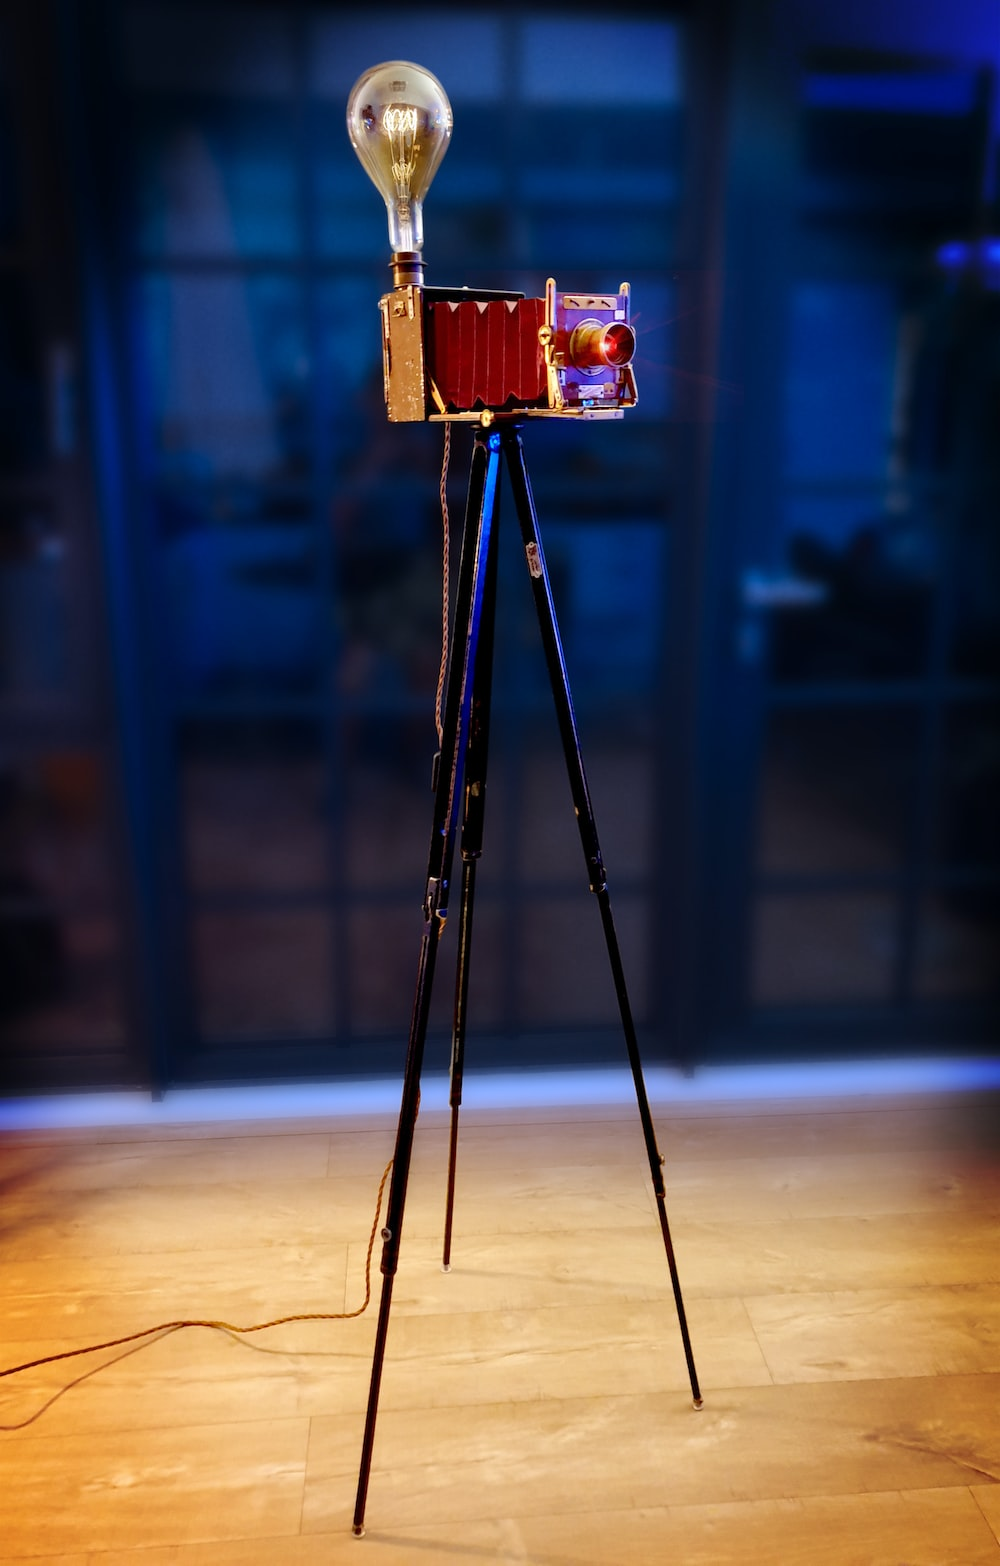 red and black camera on tripod